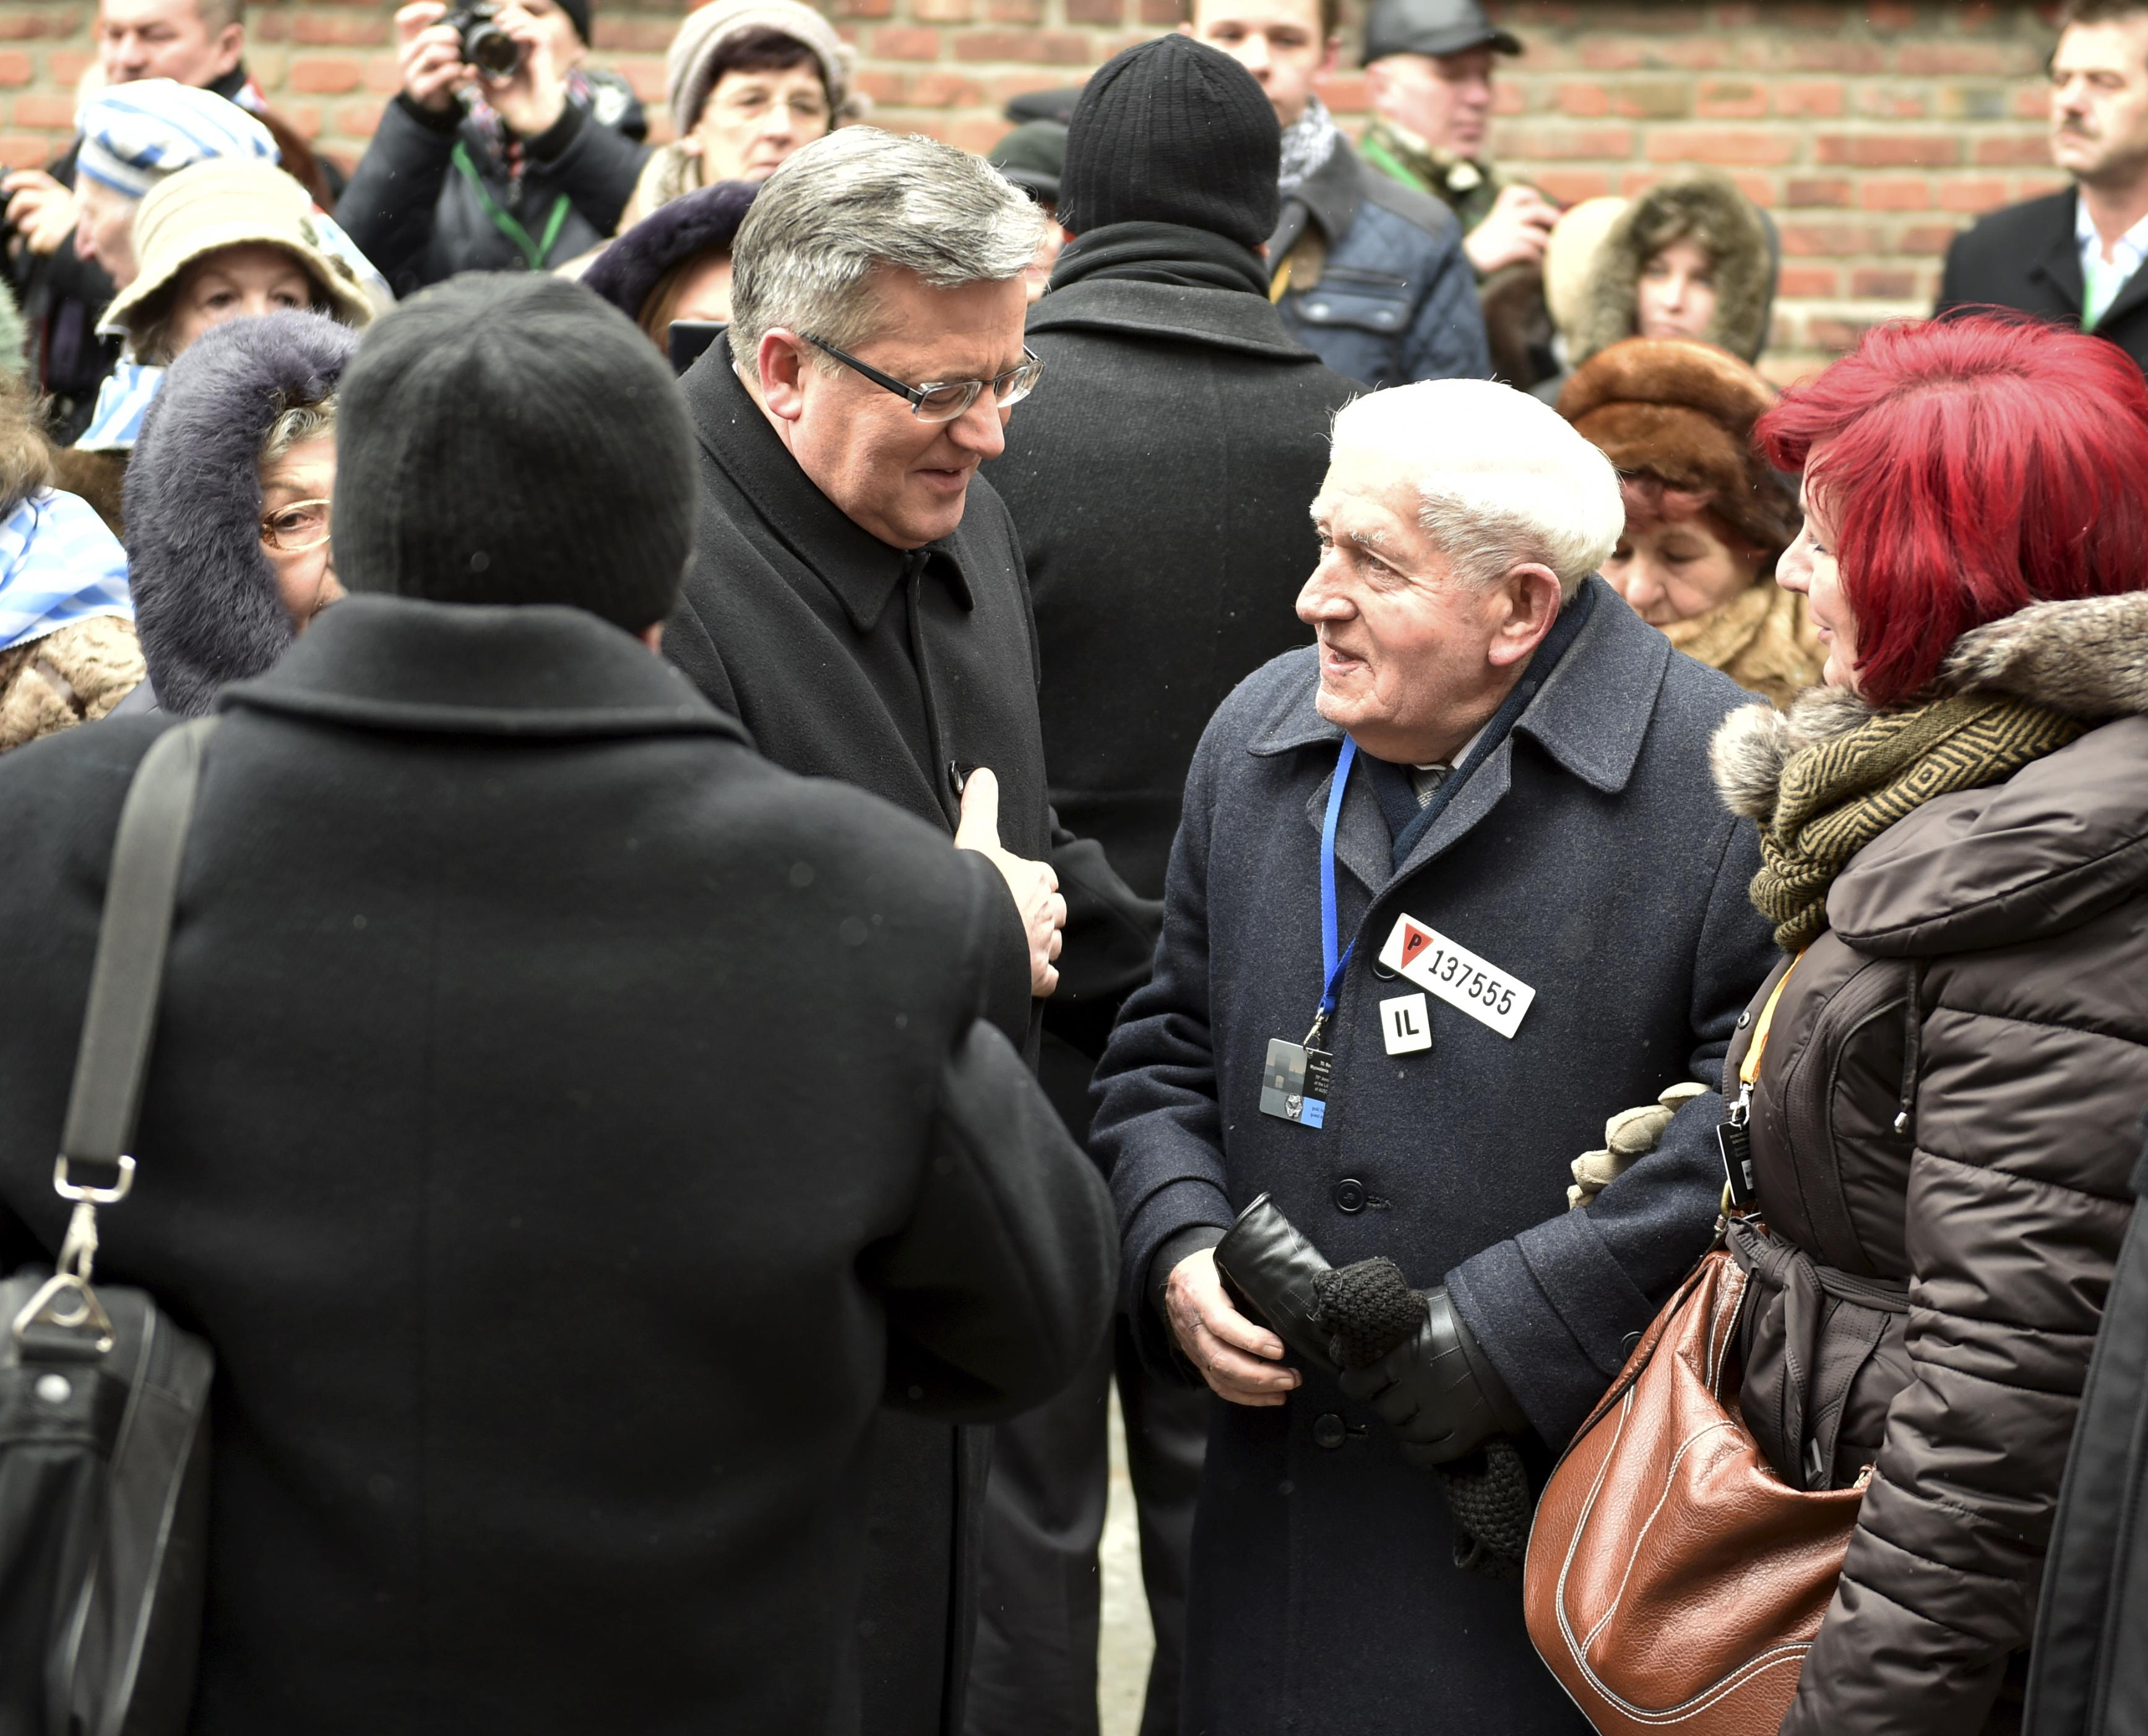 Polish President Bronislaw Komorowski (left) and survivors of the Auschwitz-Birkenau concentration camp gather at the Wall of Death on Jan. 27, the 70th anniversary of the liberation of the Nazi extermination camp in Auschwitz, Poland. The Japanese and Polish governments are arranging a summit meeting in Tokyo in late February, diplomatic sources said Saturday.   KYODO/GETTY IMAGES